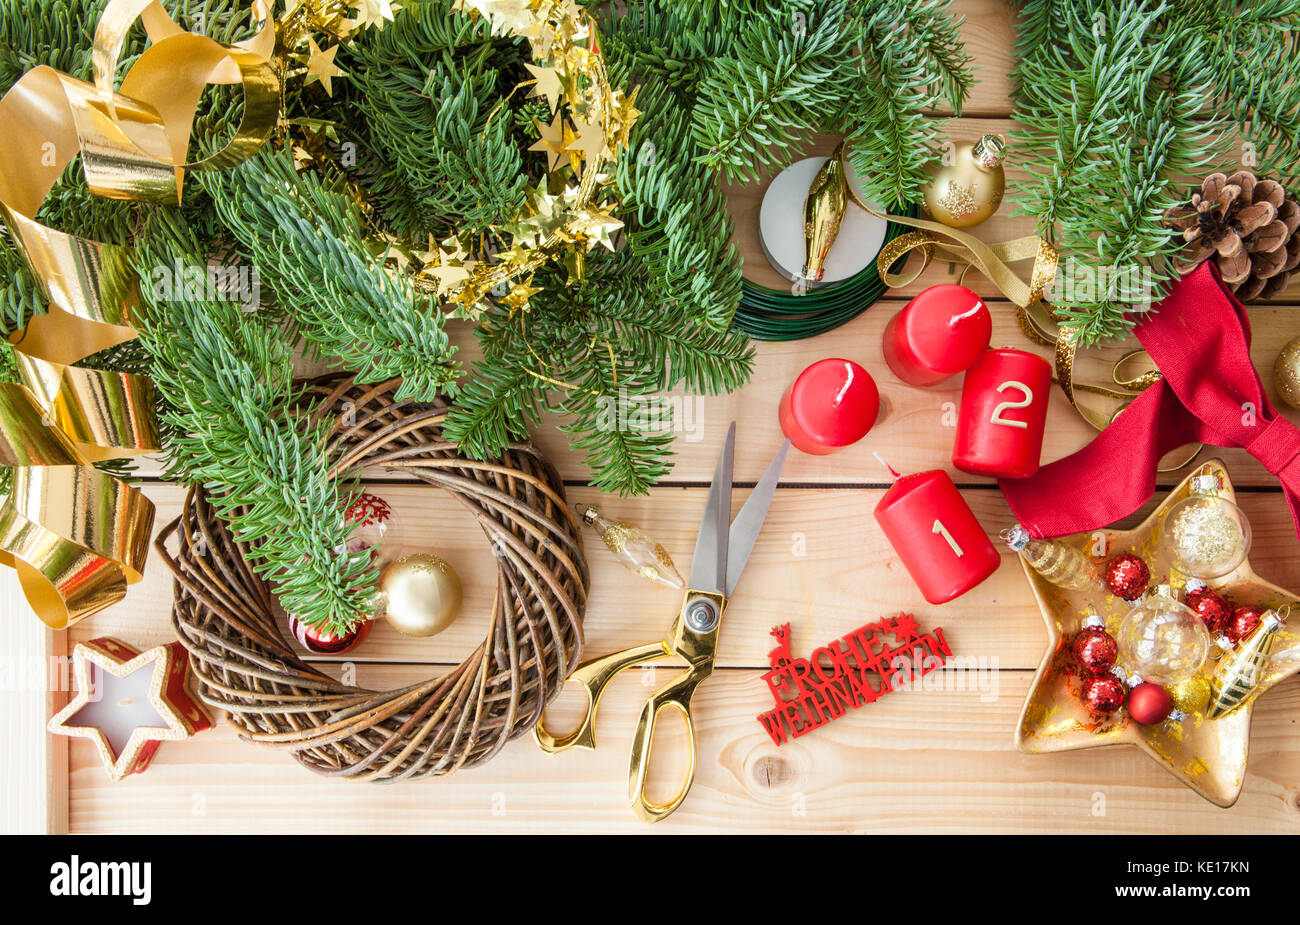 Crafting an advent wreath with golden ornaments - Stock Image